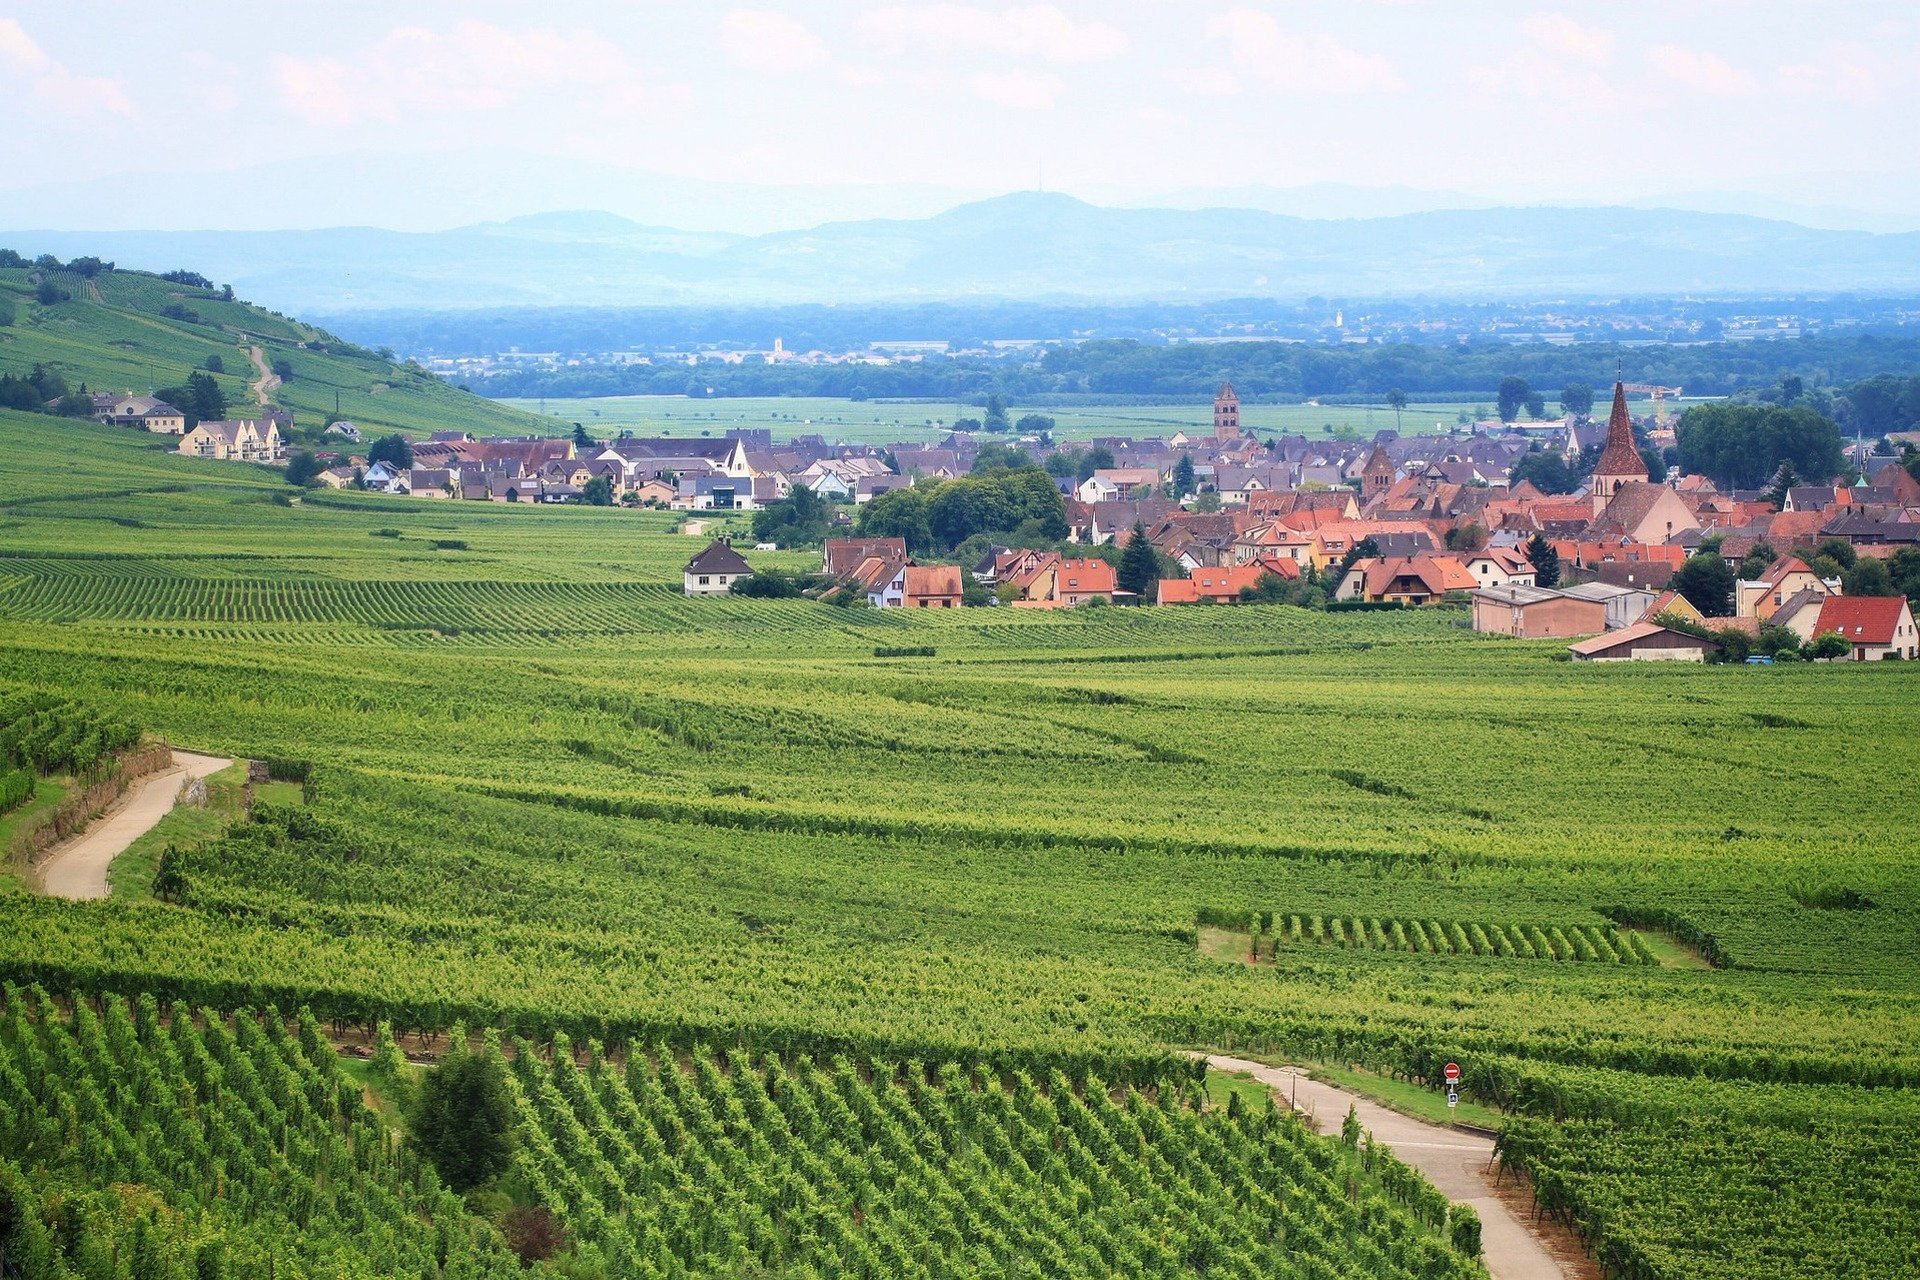 vineyard-wine-private tour-Colmar-Alsace-France